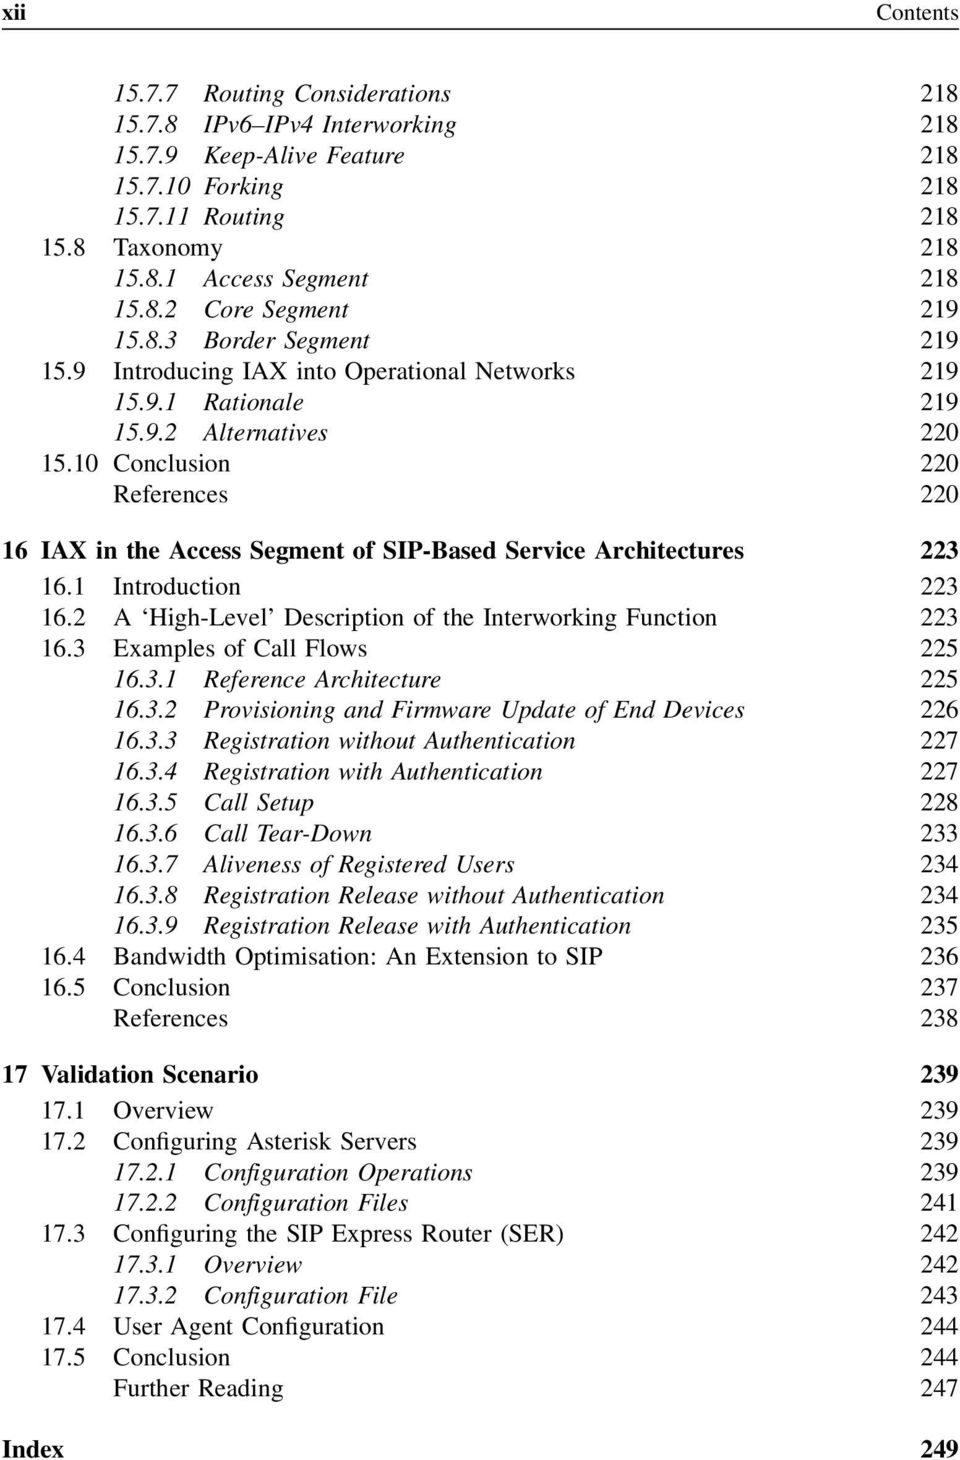 10 Conclusion 220 References 220 16 IAX in the Access Segment of SIP-Based Service Architectures 223 16.1 Introduction 223 16.2 A High-Level Description of the Interworking Function 223 16.